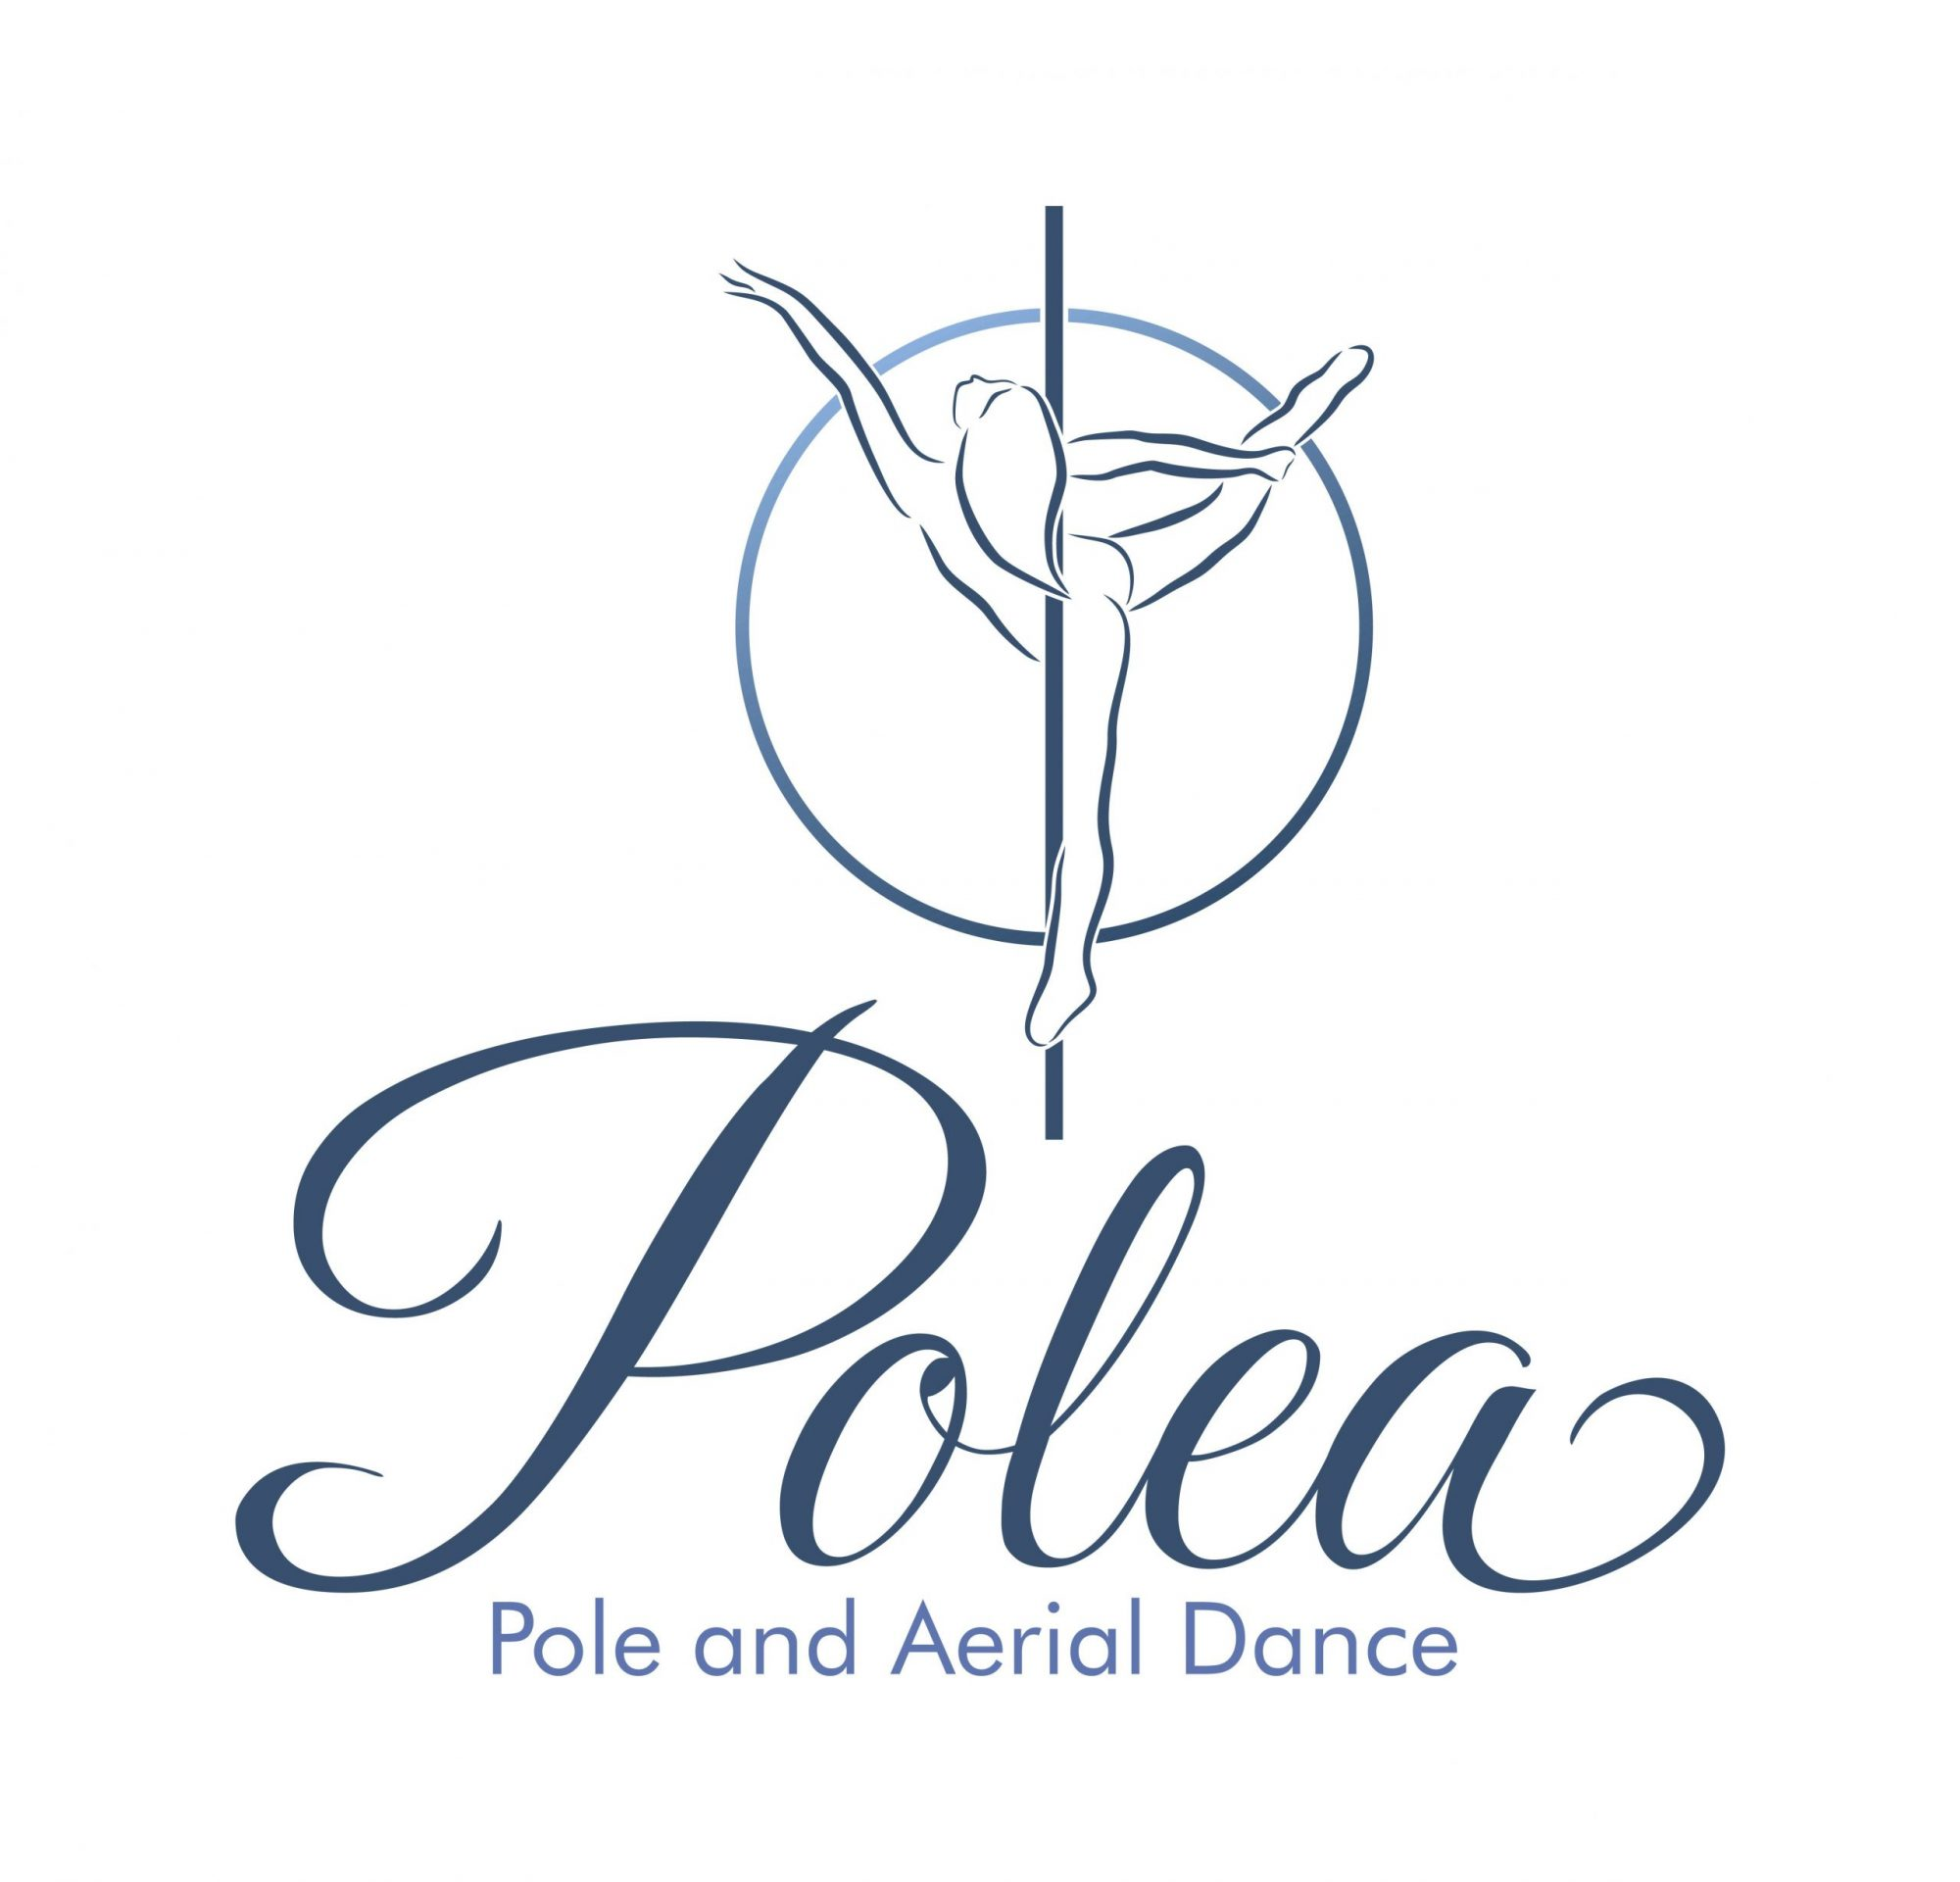 Polea - Pole and Aerial Dance